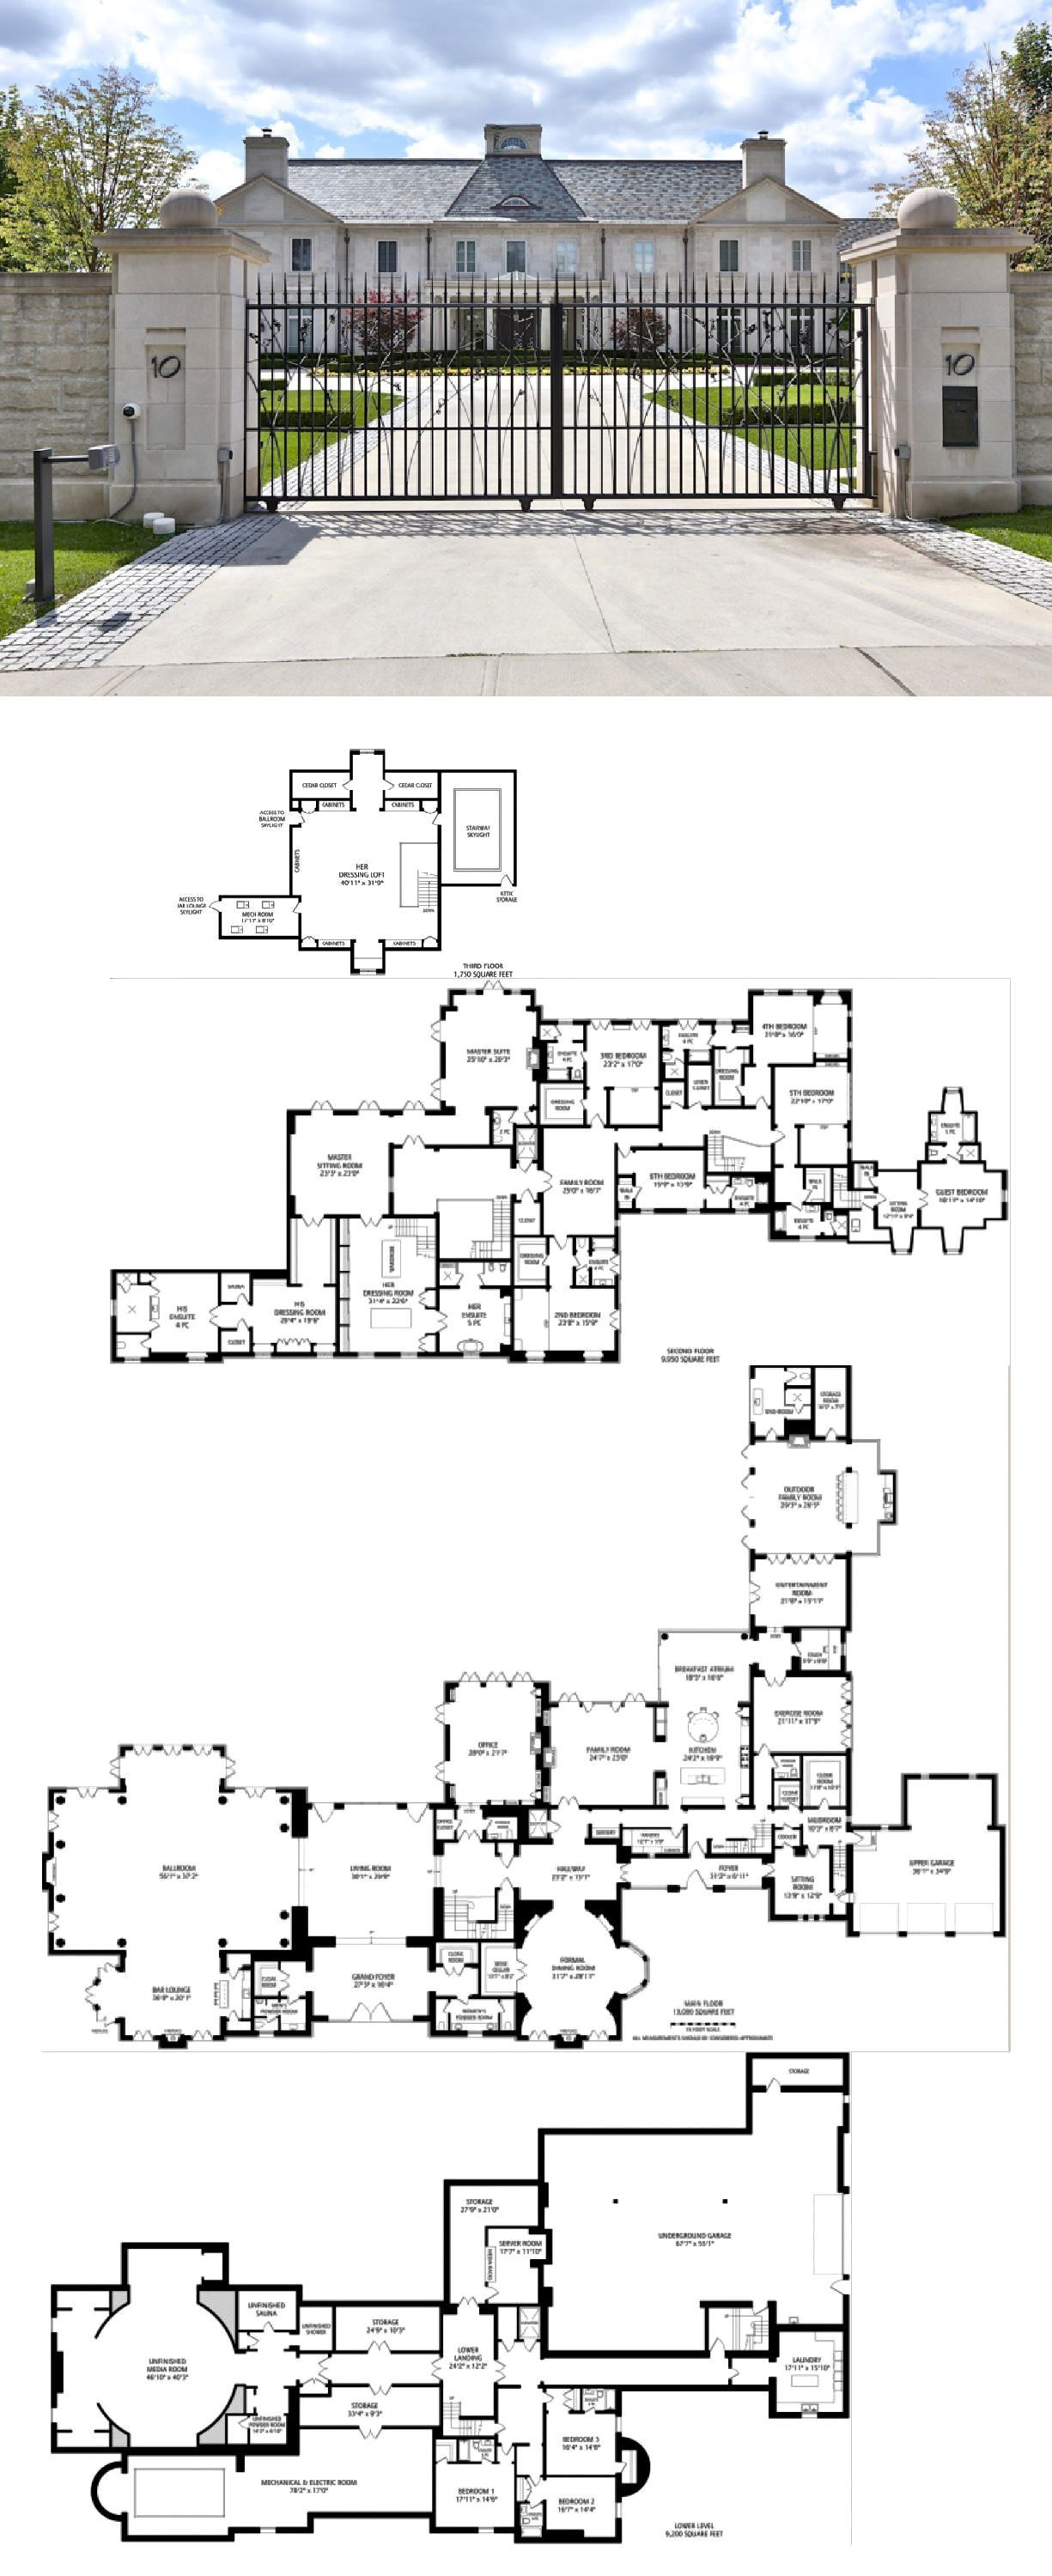 28 8 Million Newly Built 33 000 Square Foot Mega Mansion In Toronto Homes Of The Rich House Plans Mansion Mansion Floor Plan House Blueprints